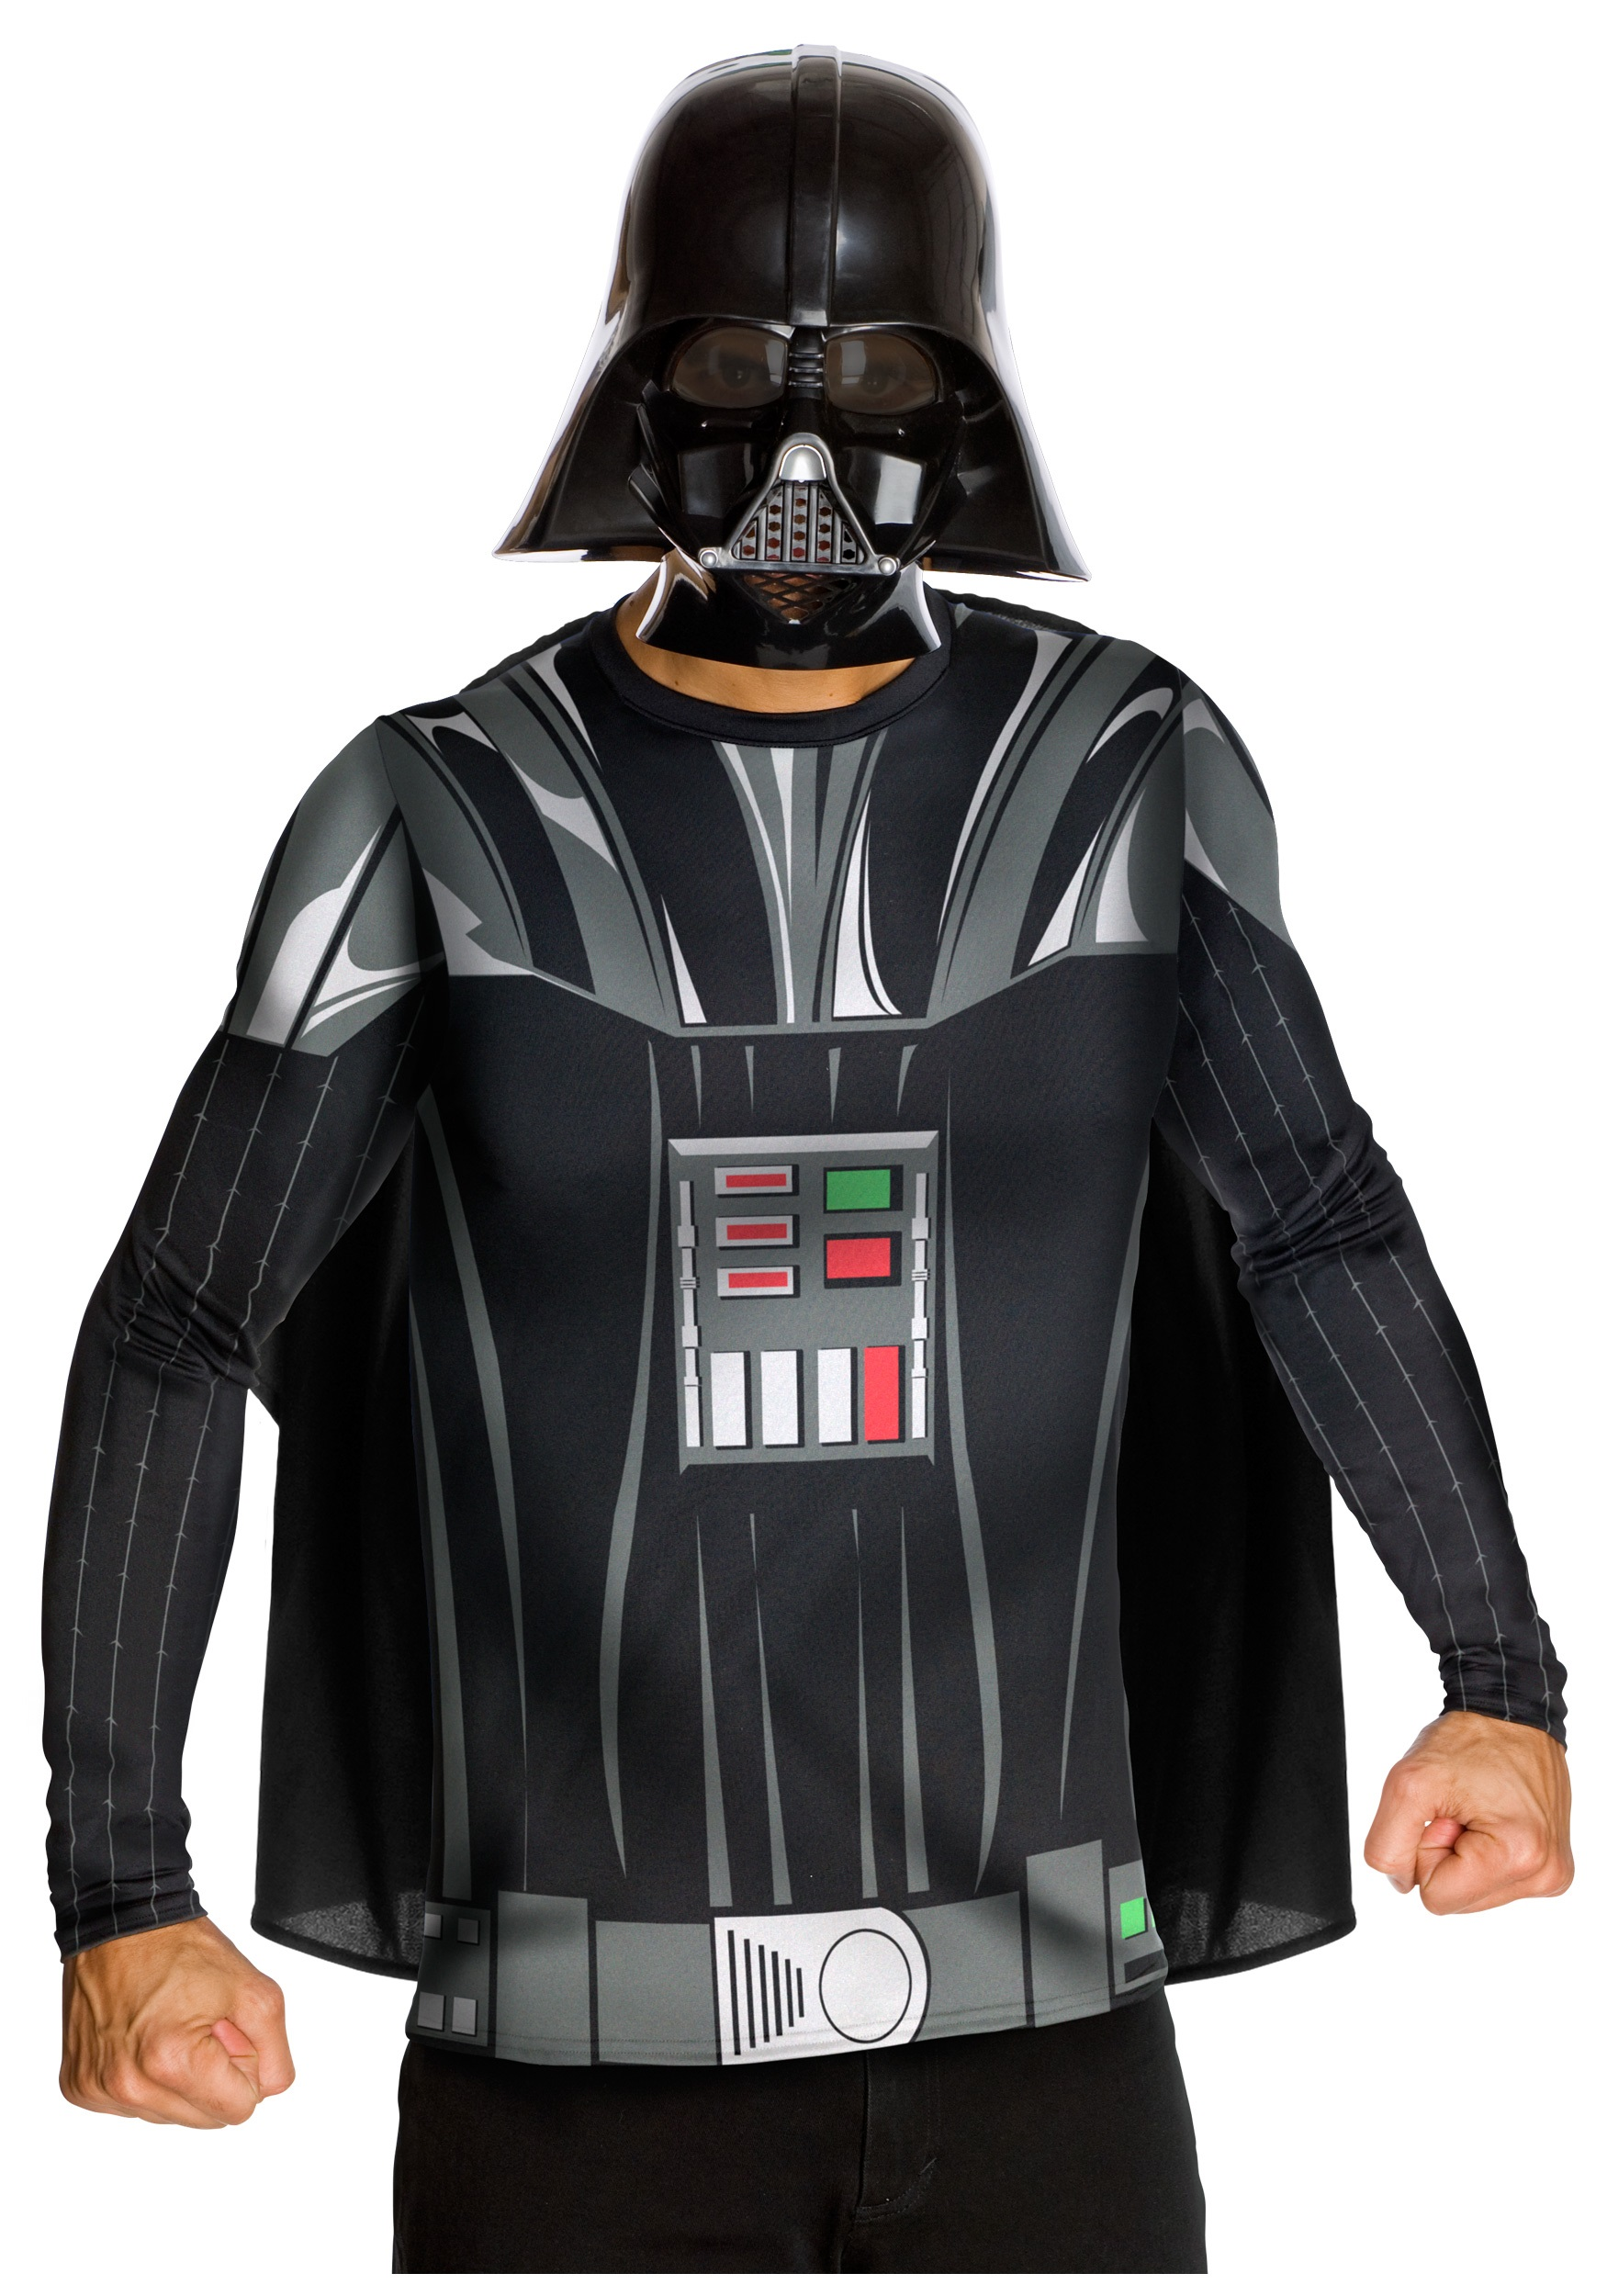 Star Wars Darth Vader Top and Mask  RU880678